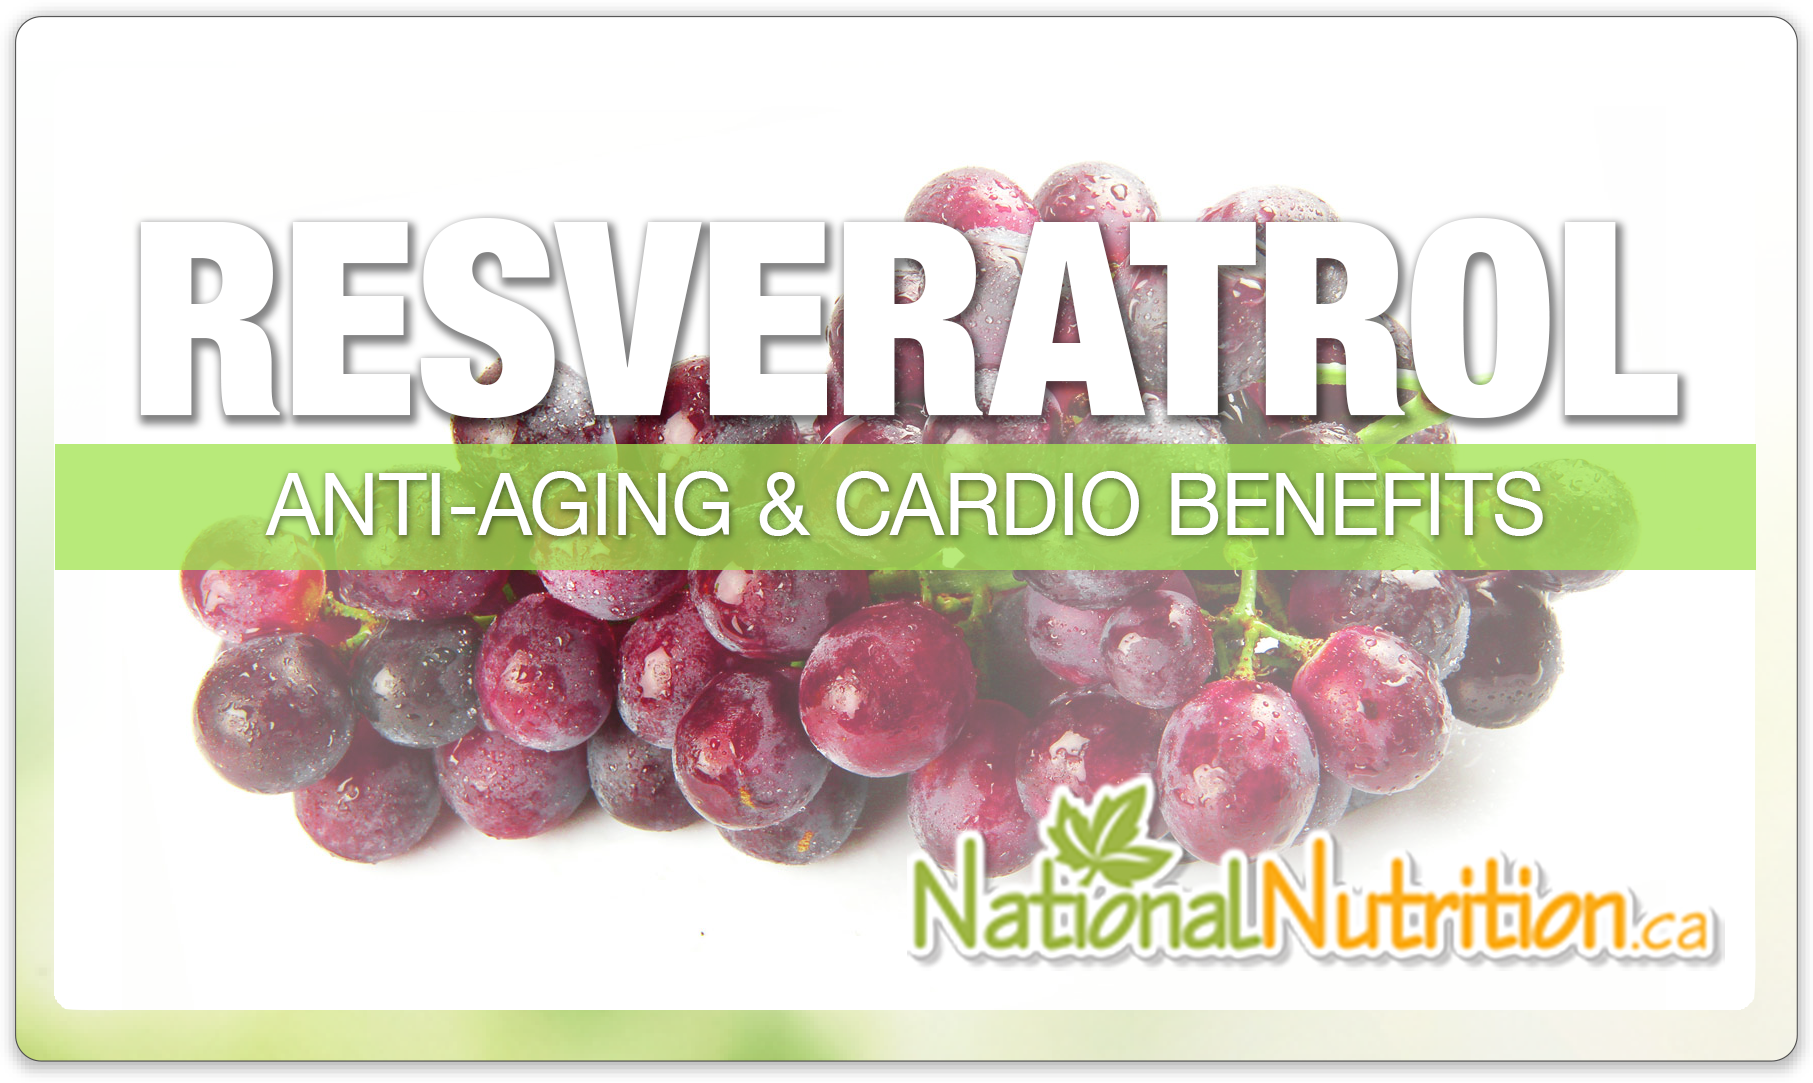 Resveratrol National Nutrition Articles